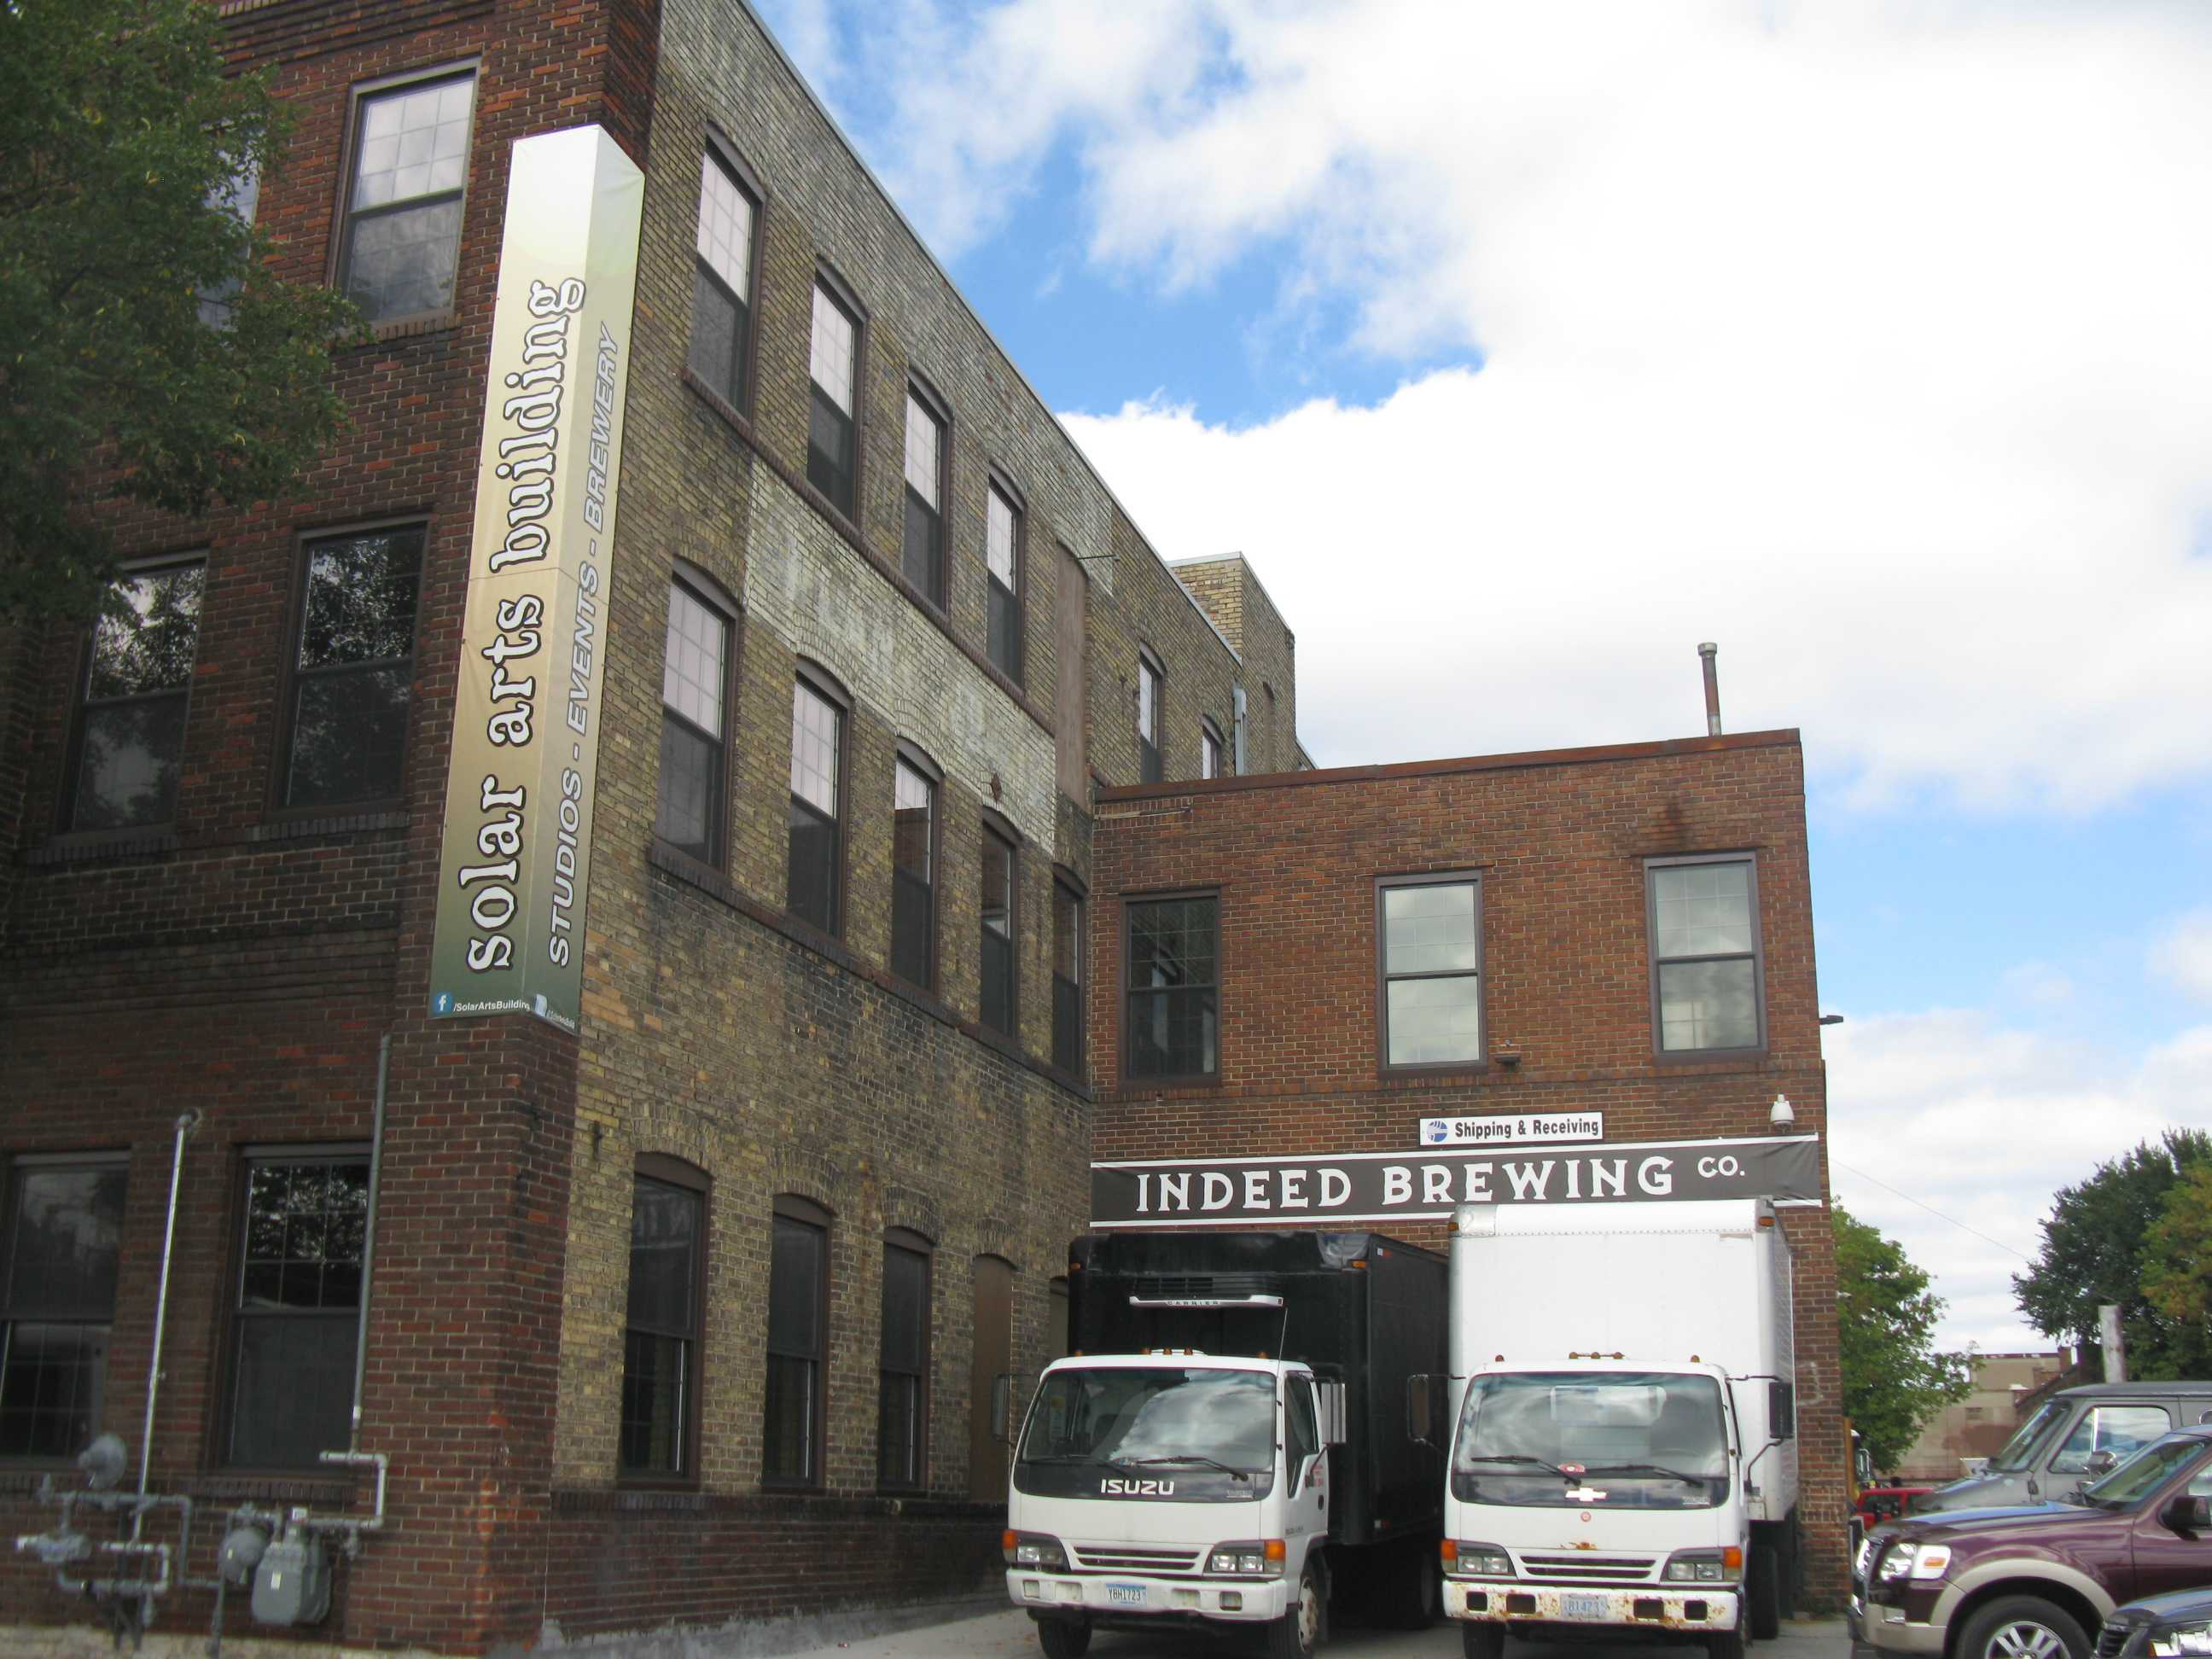 Outside Indeed Brewing Company which is located inside an old warehouse. Photo by Rachel Quay '14.